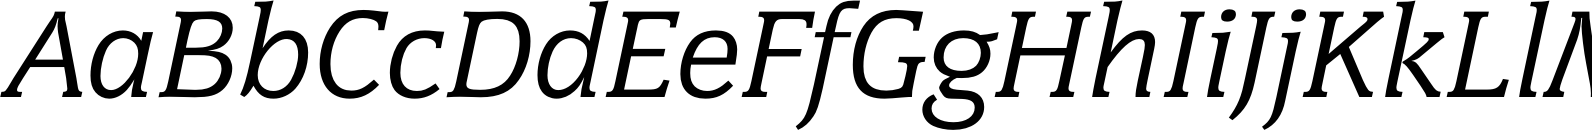 Congress Regular Italic